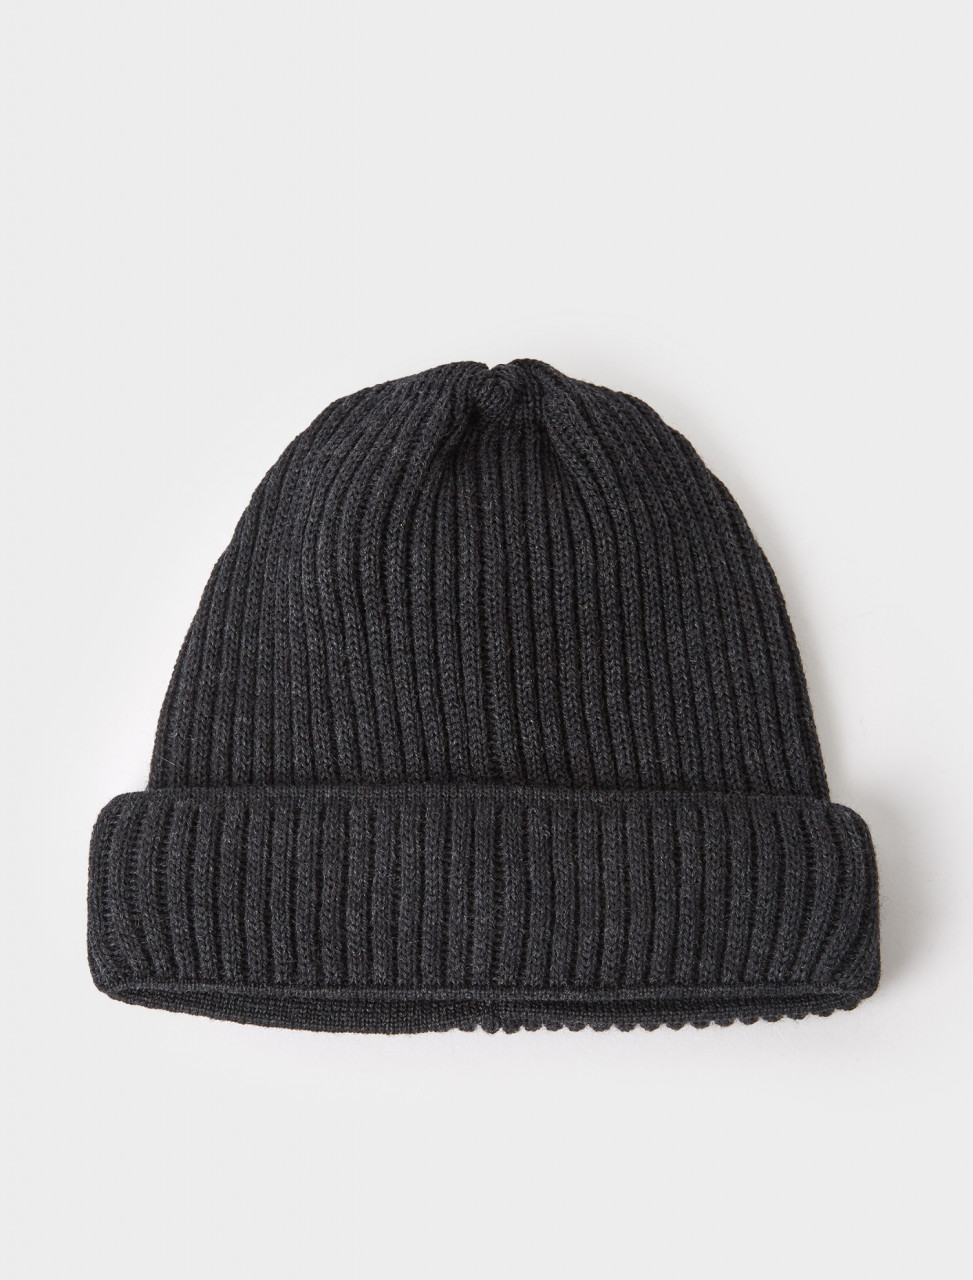 333500 ALASKA RIBBED KNIT BEANIE ANTHRACITE